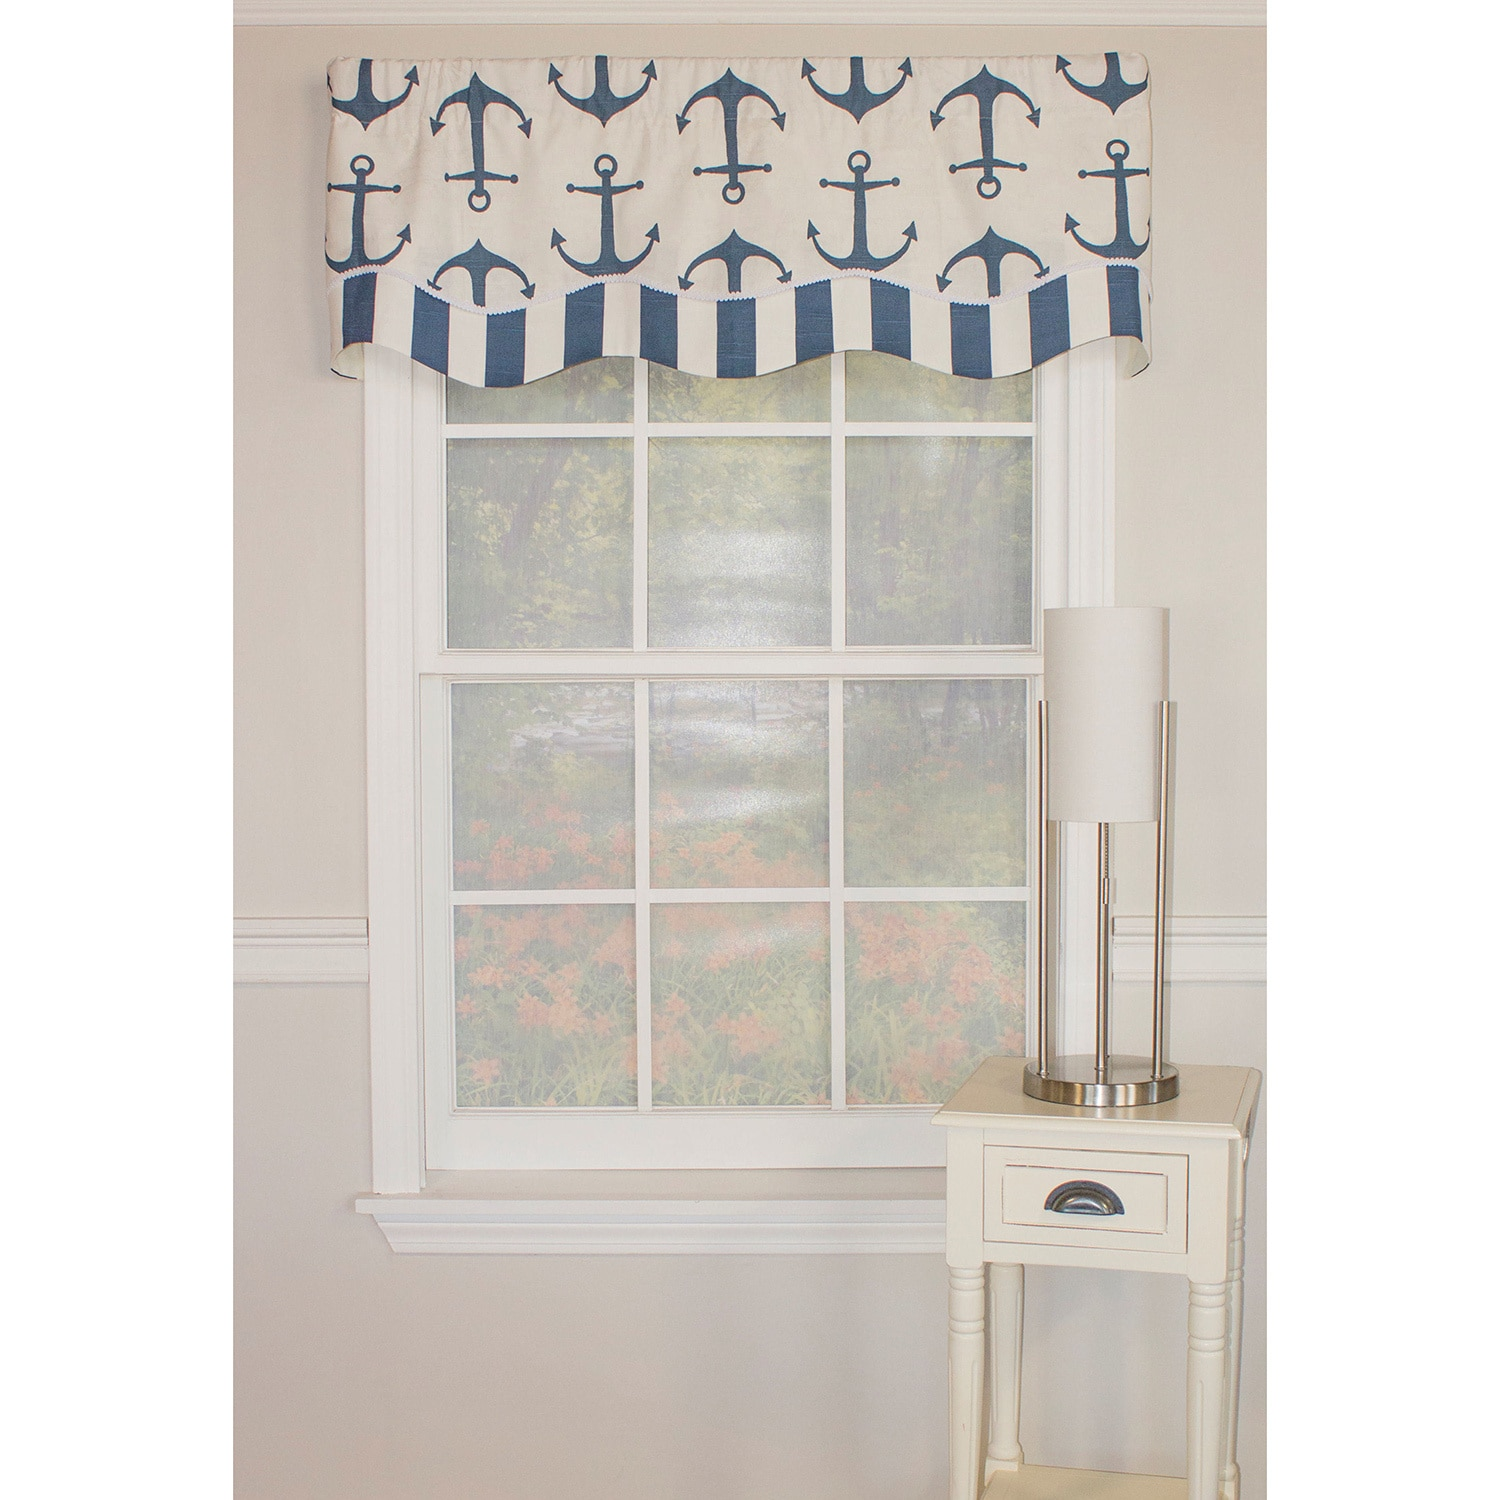 RLF HOME Anchors Away Glory Valance (Navy), Blue (100% Co...